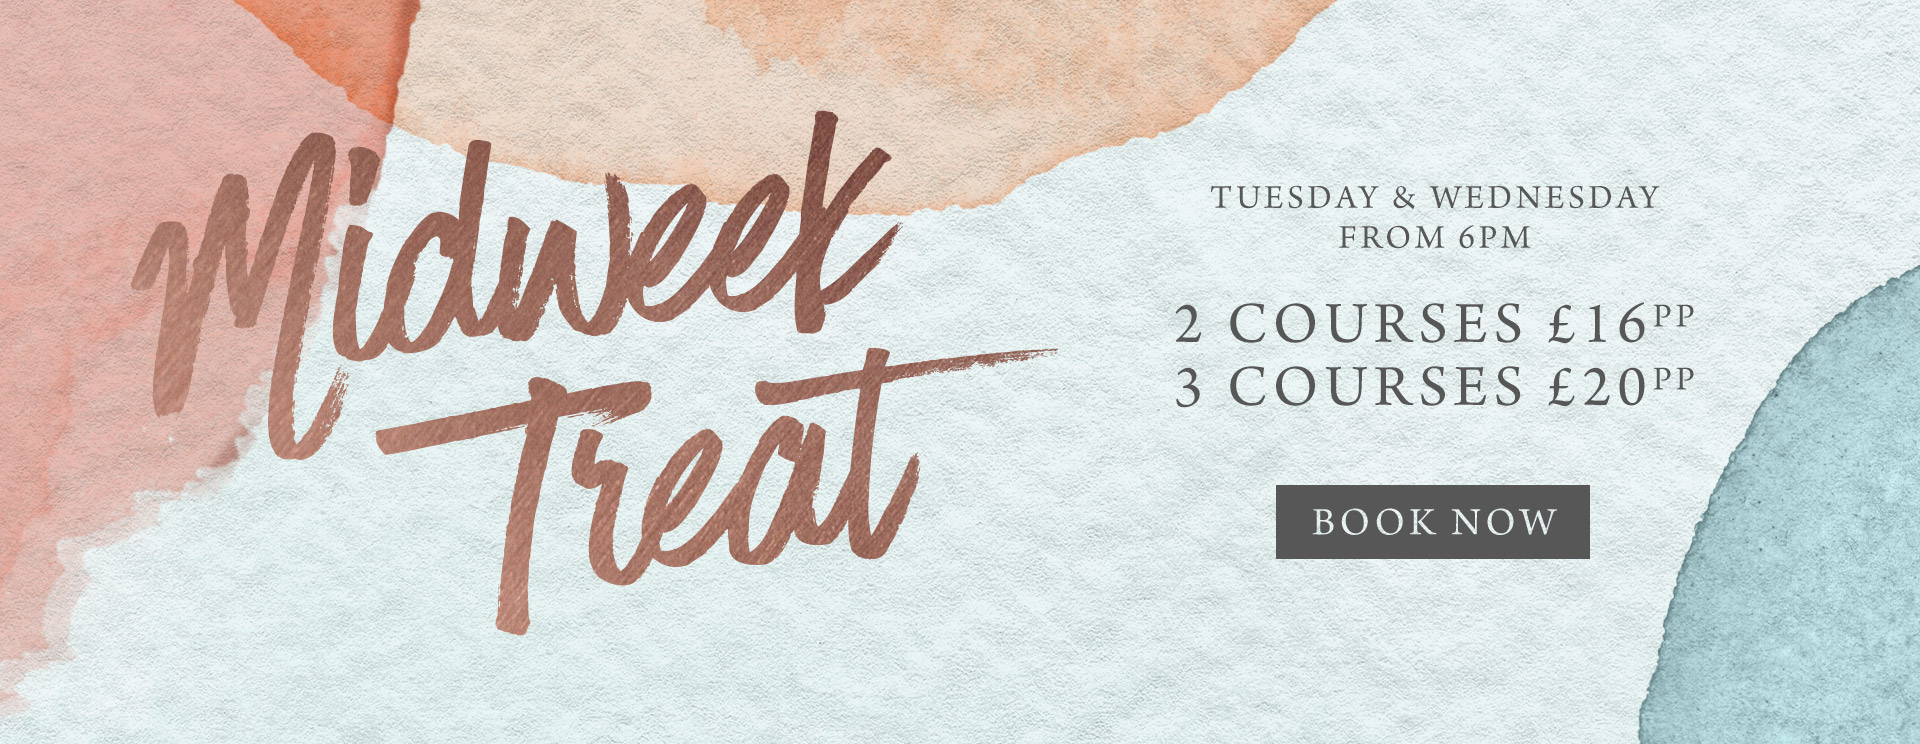 Midweek treat at The Prince of Wales - Book now